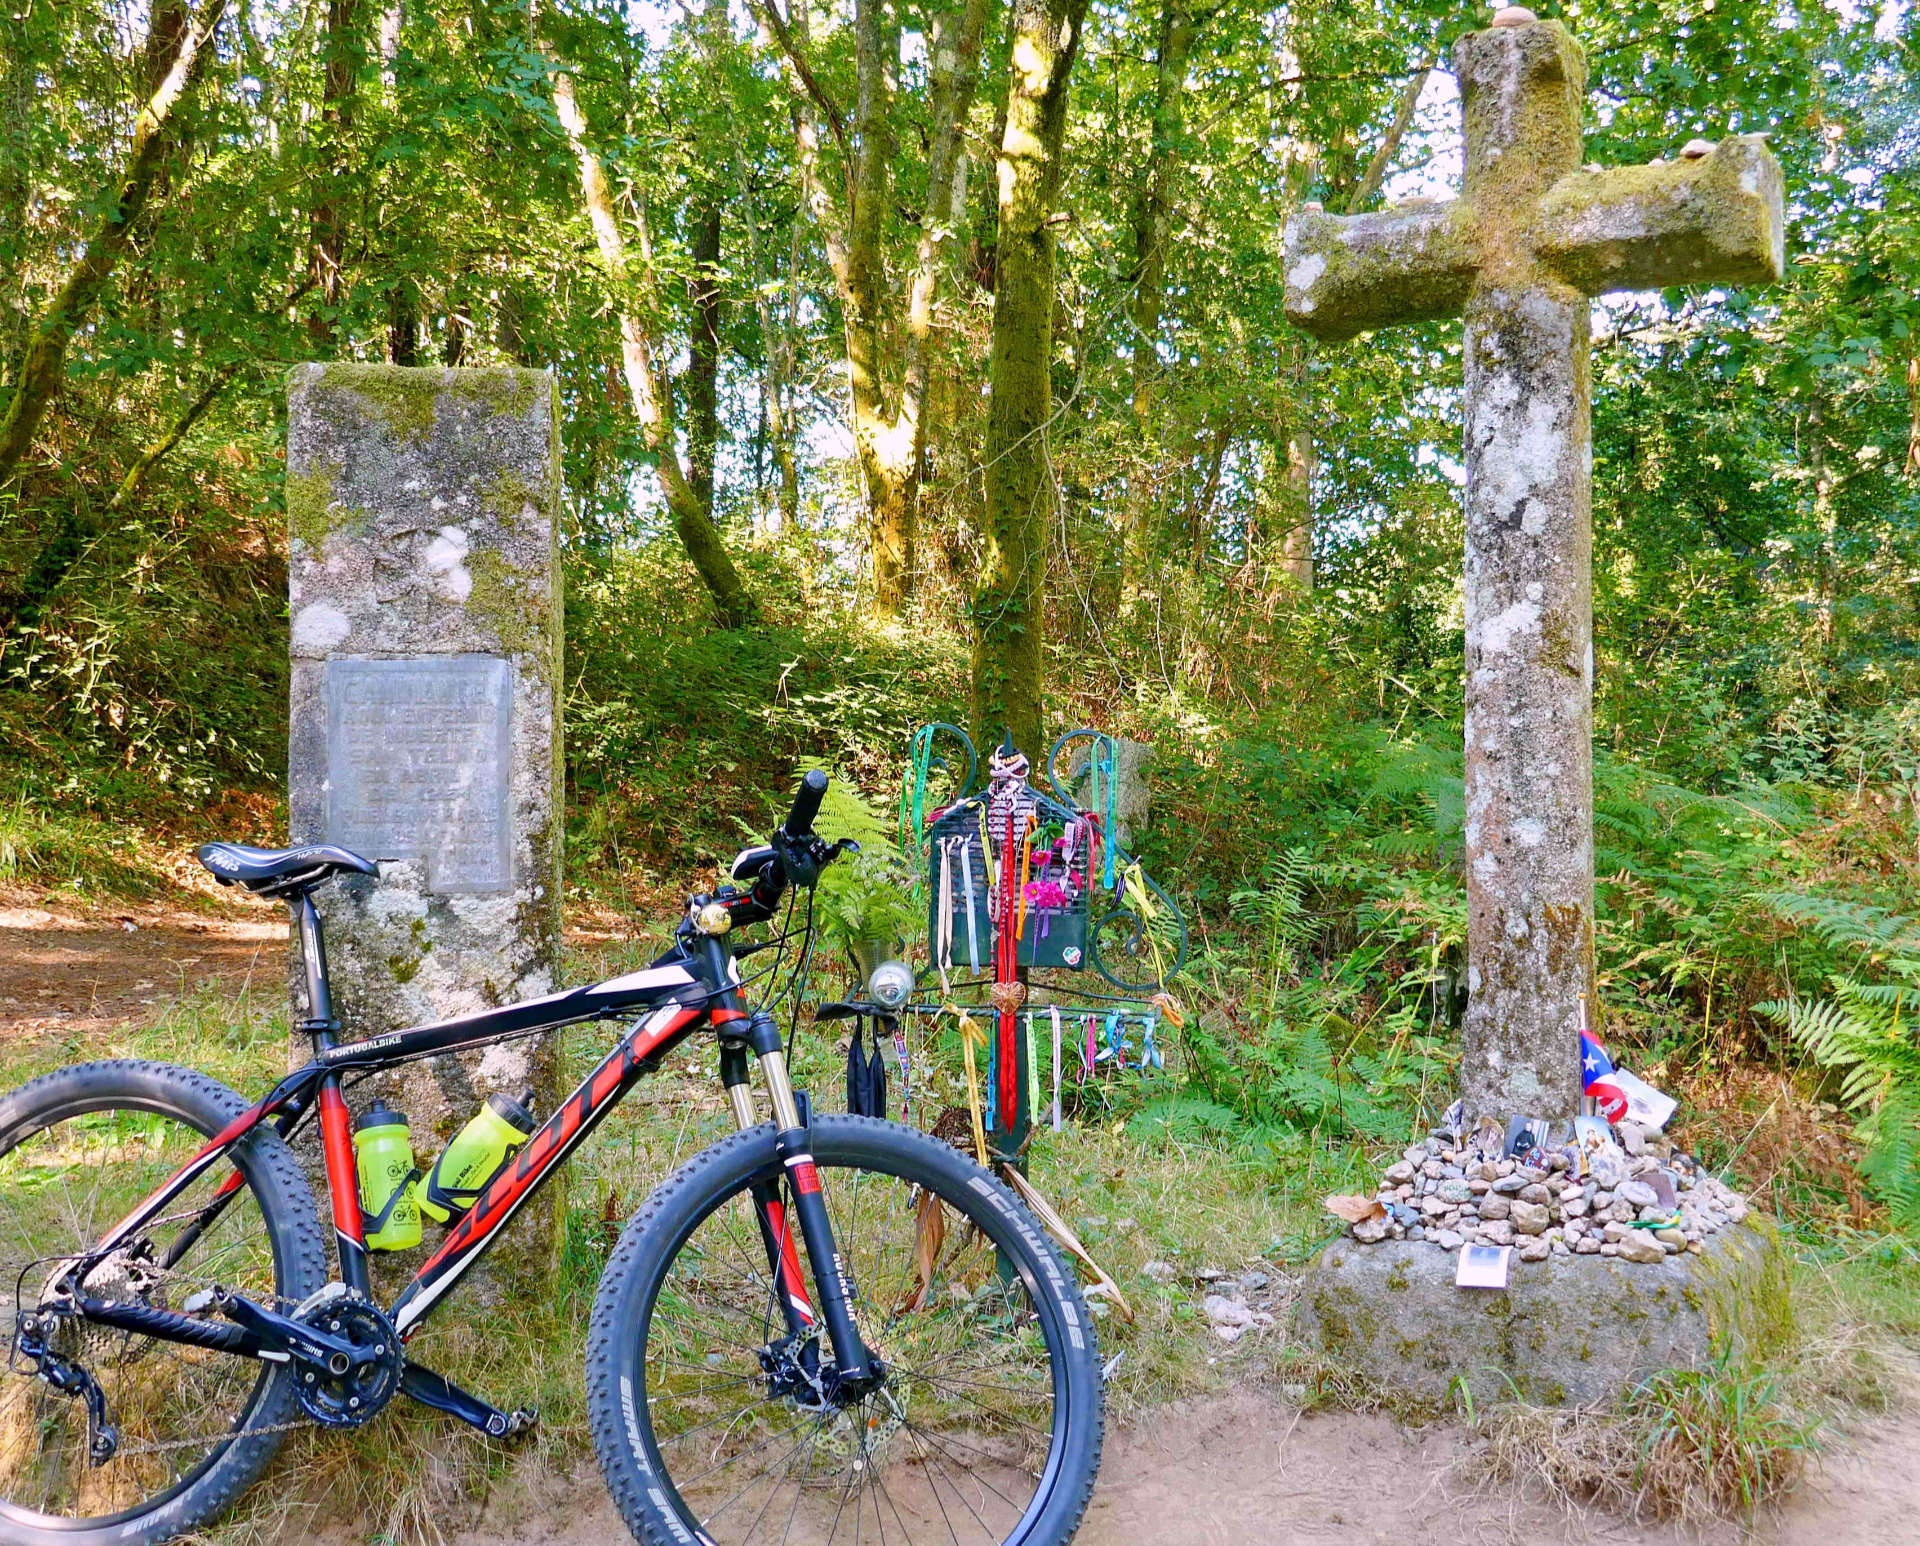 Cycling the Camino de Santiago, old pilgrimage routes